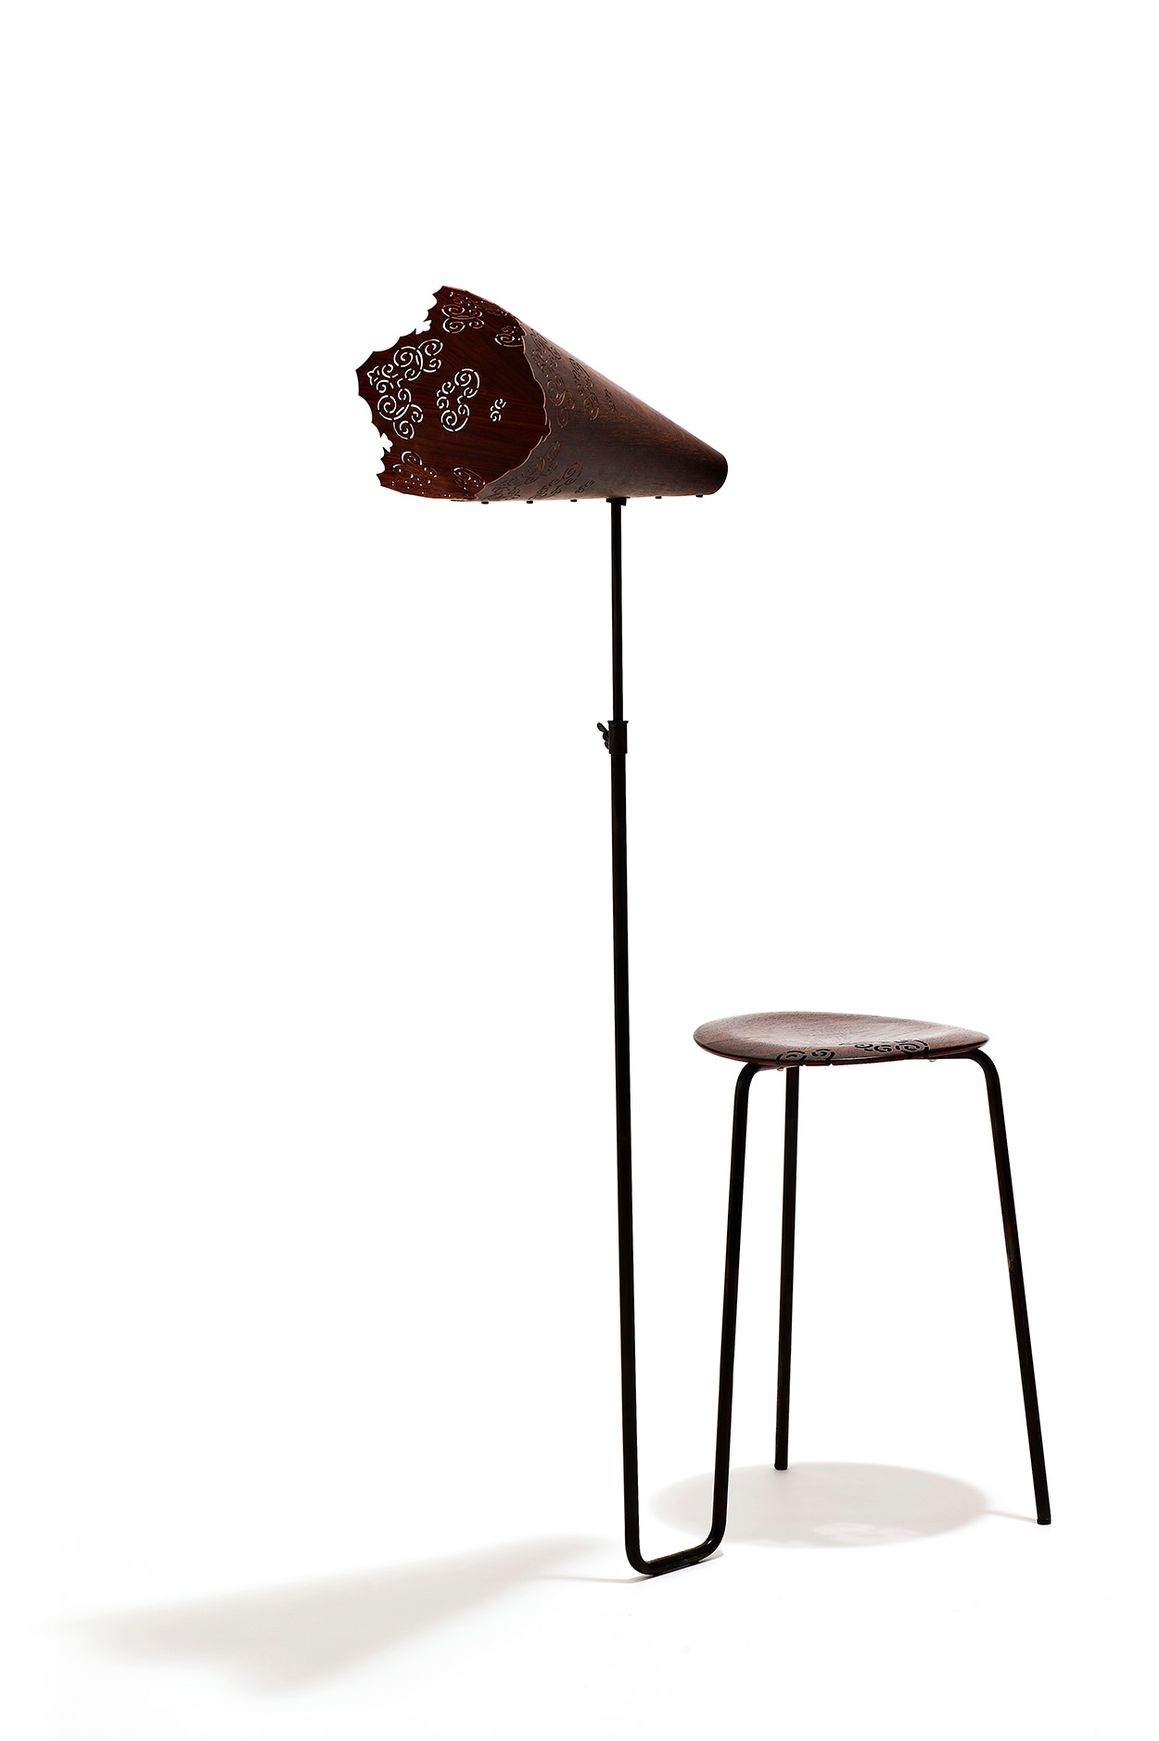 Ditte Hammerstrøm / Industrial designer chair art